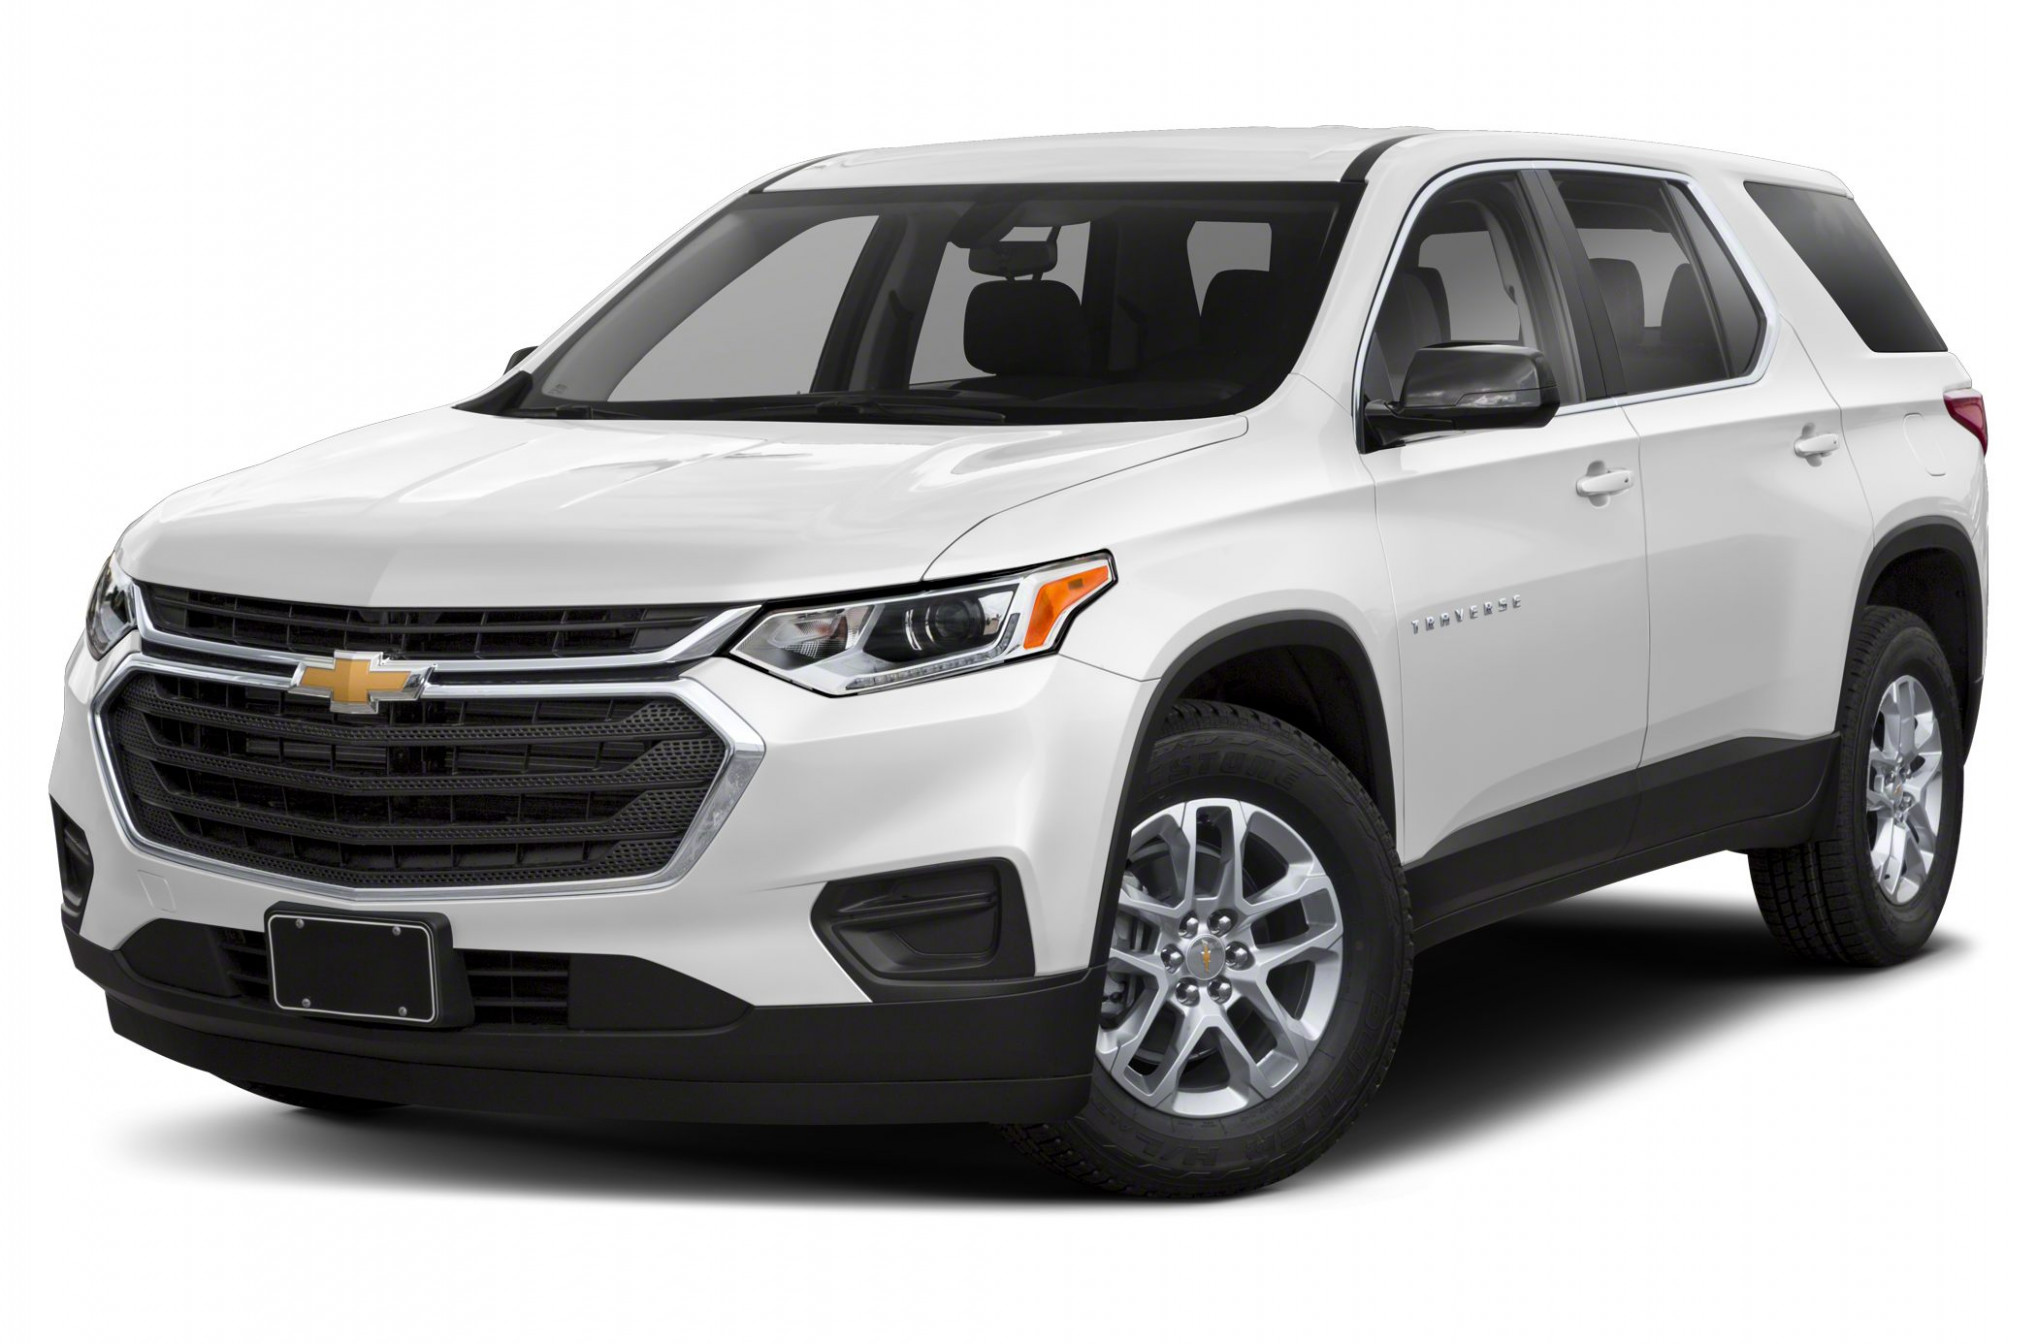 5 Chevrolet Traverse LS All-wheel Drive Specs and Prices | 2020 Chevrolet Traverse 1Lt